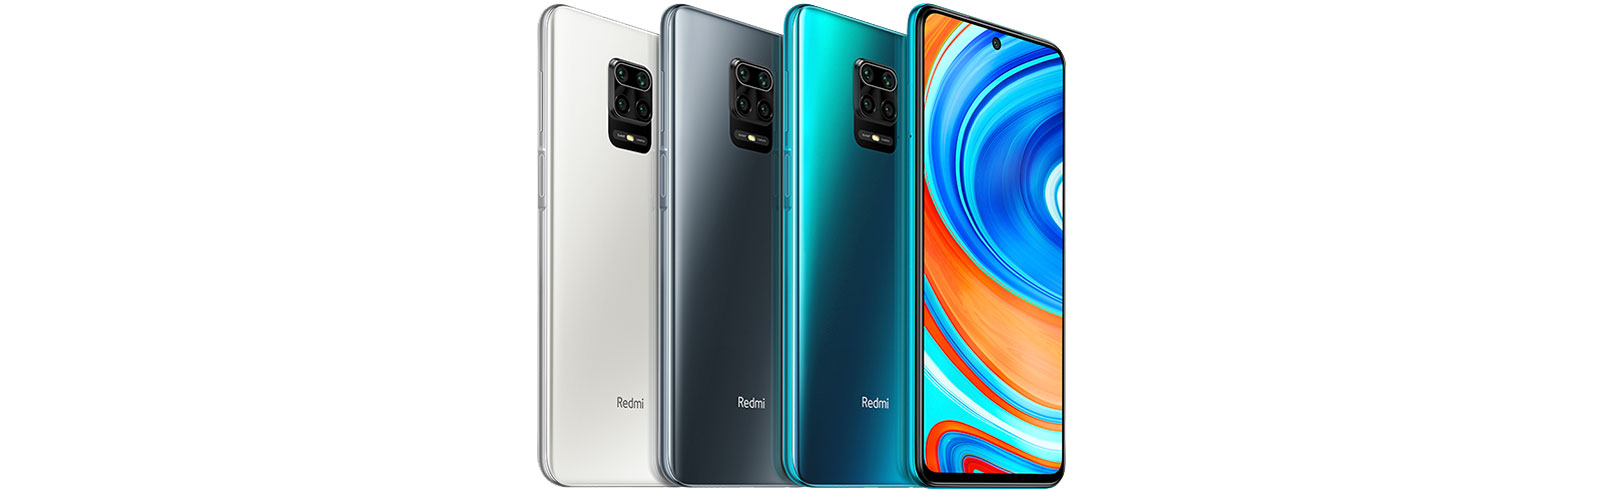 Redmi Note 9 Pro Max and Redmi Note 9 Pro specifications, prices, availability